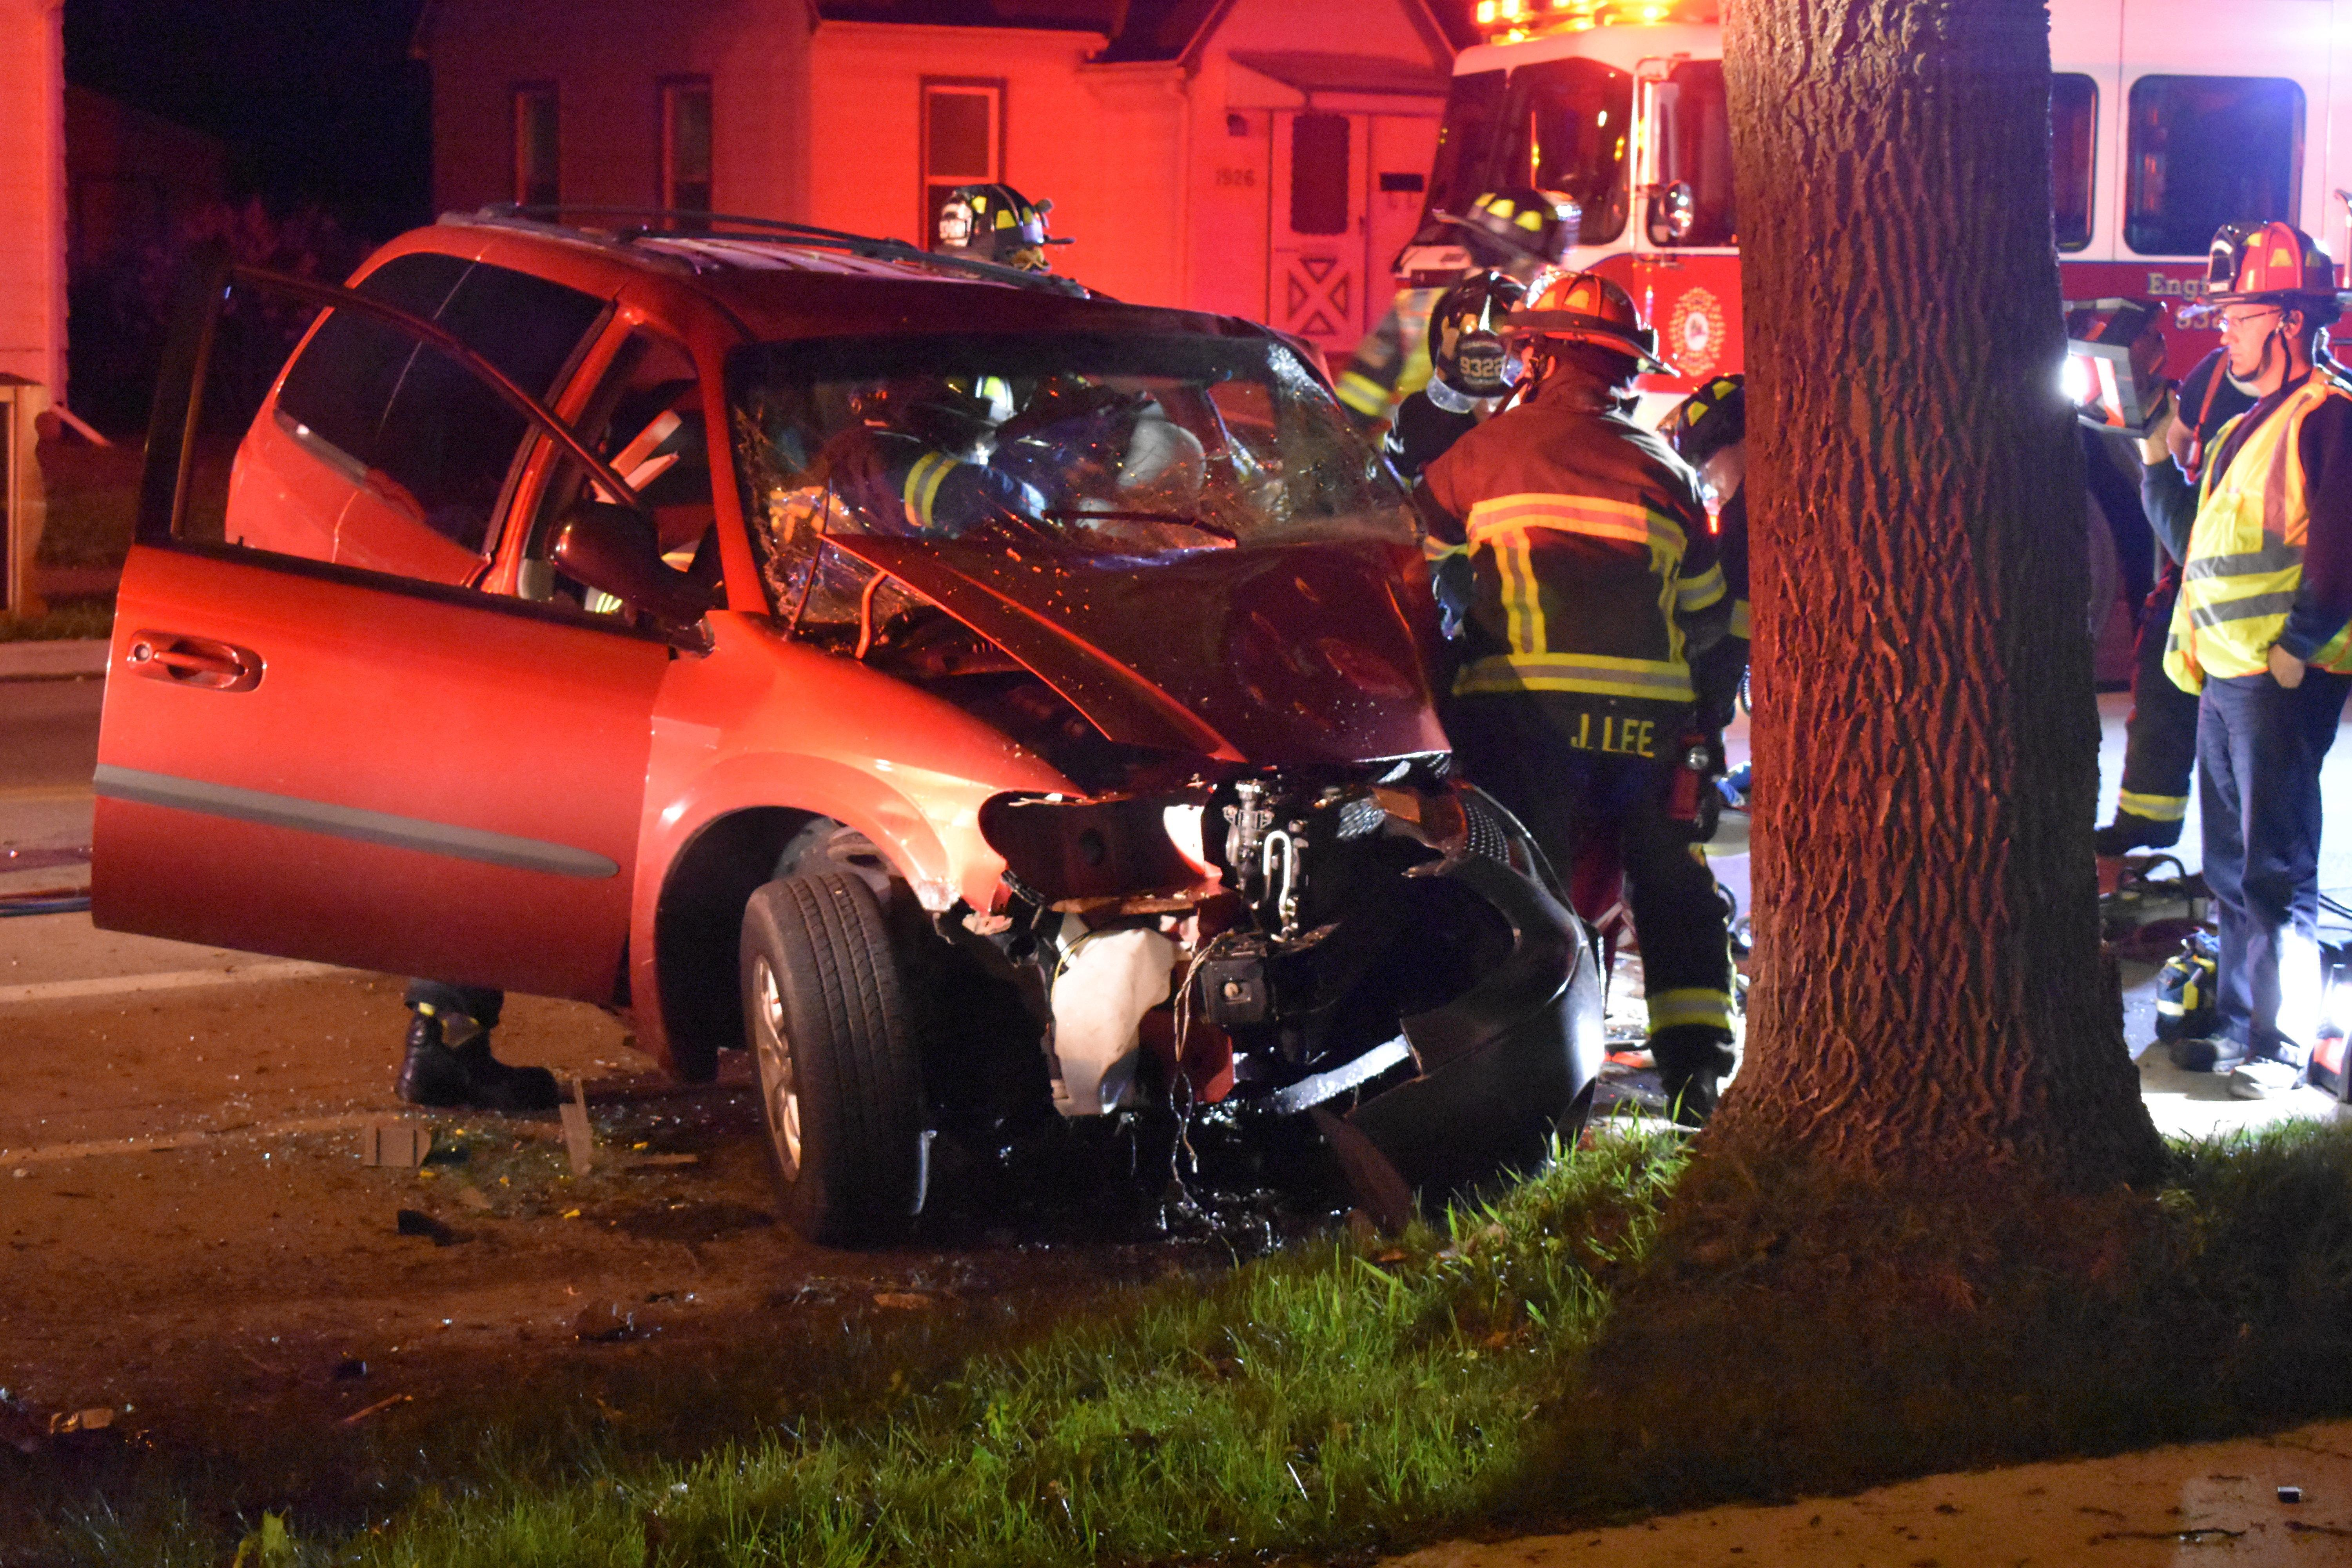 Emergency crews respond to a crash involving a suspected drunken driver on E. Newberry Street in Appleton May 21, 2018. (Photo submitted by Chris Beeman)